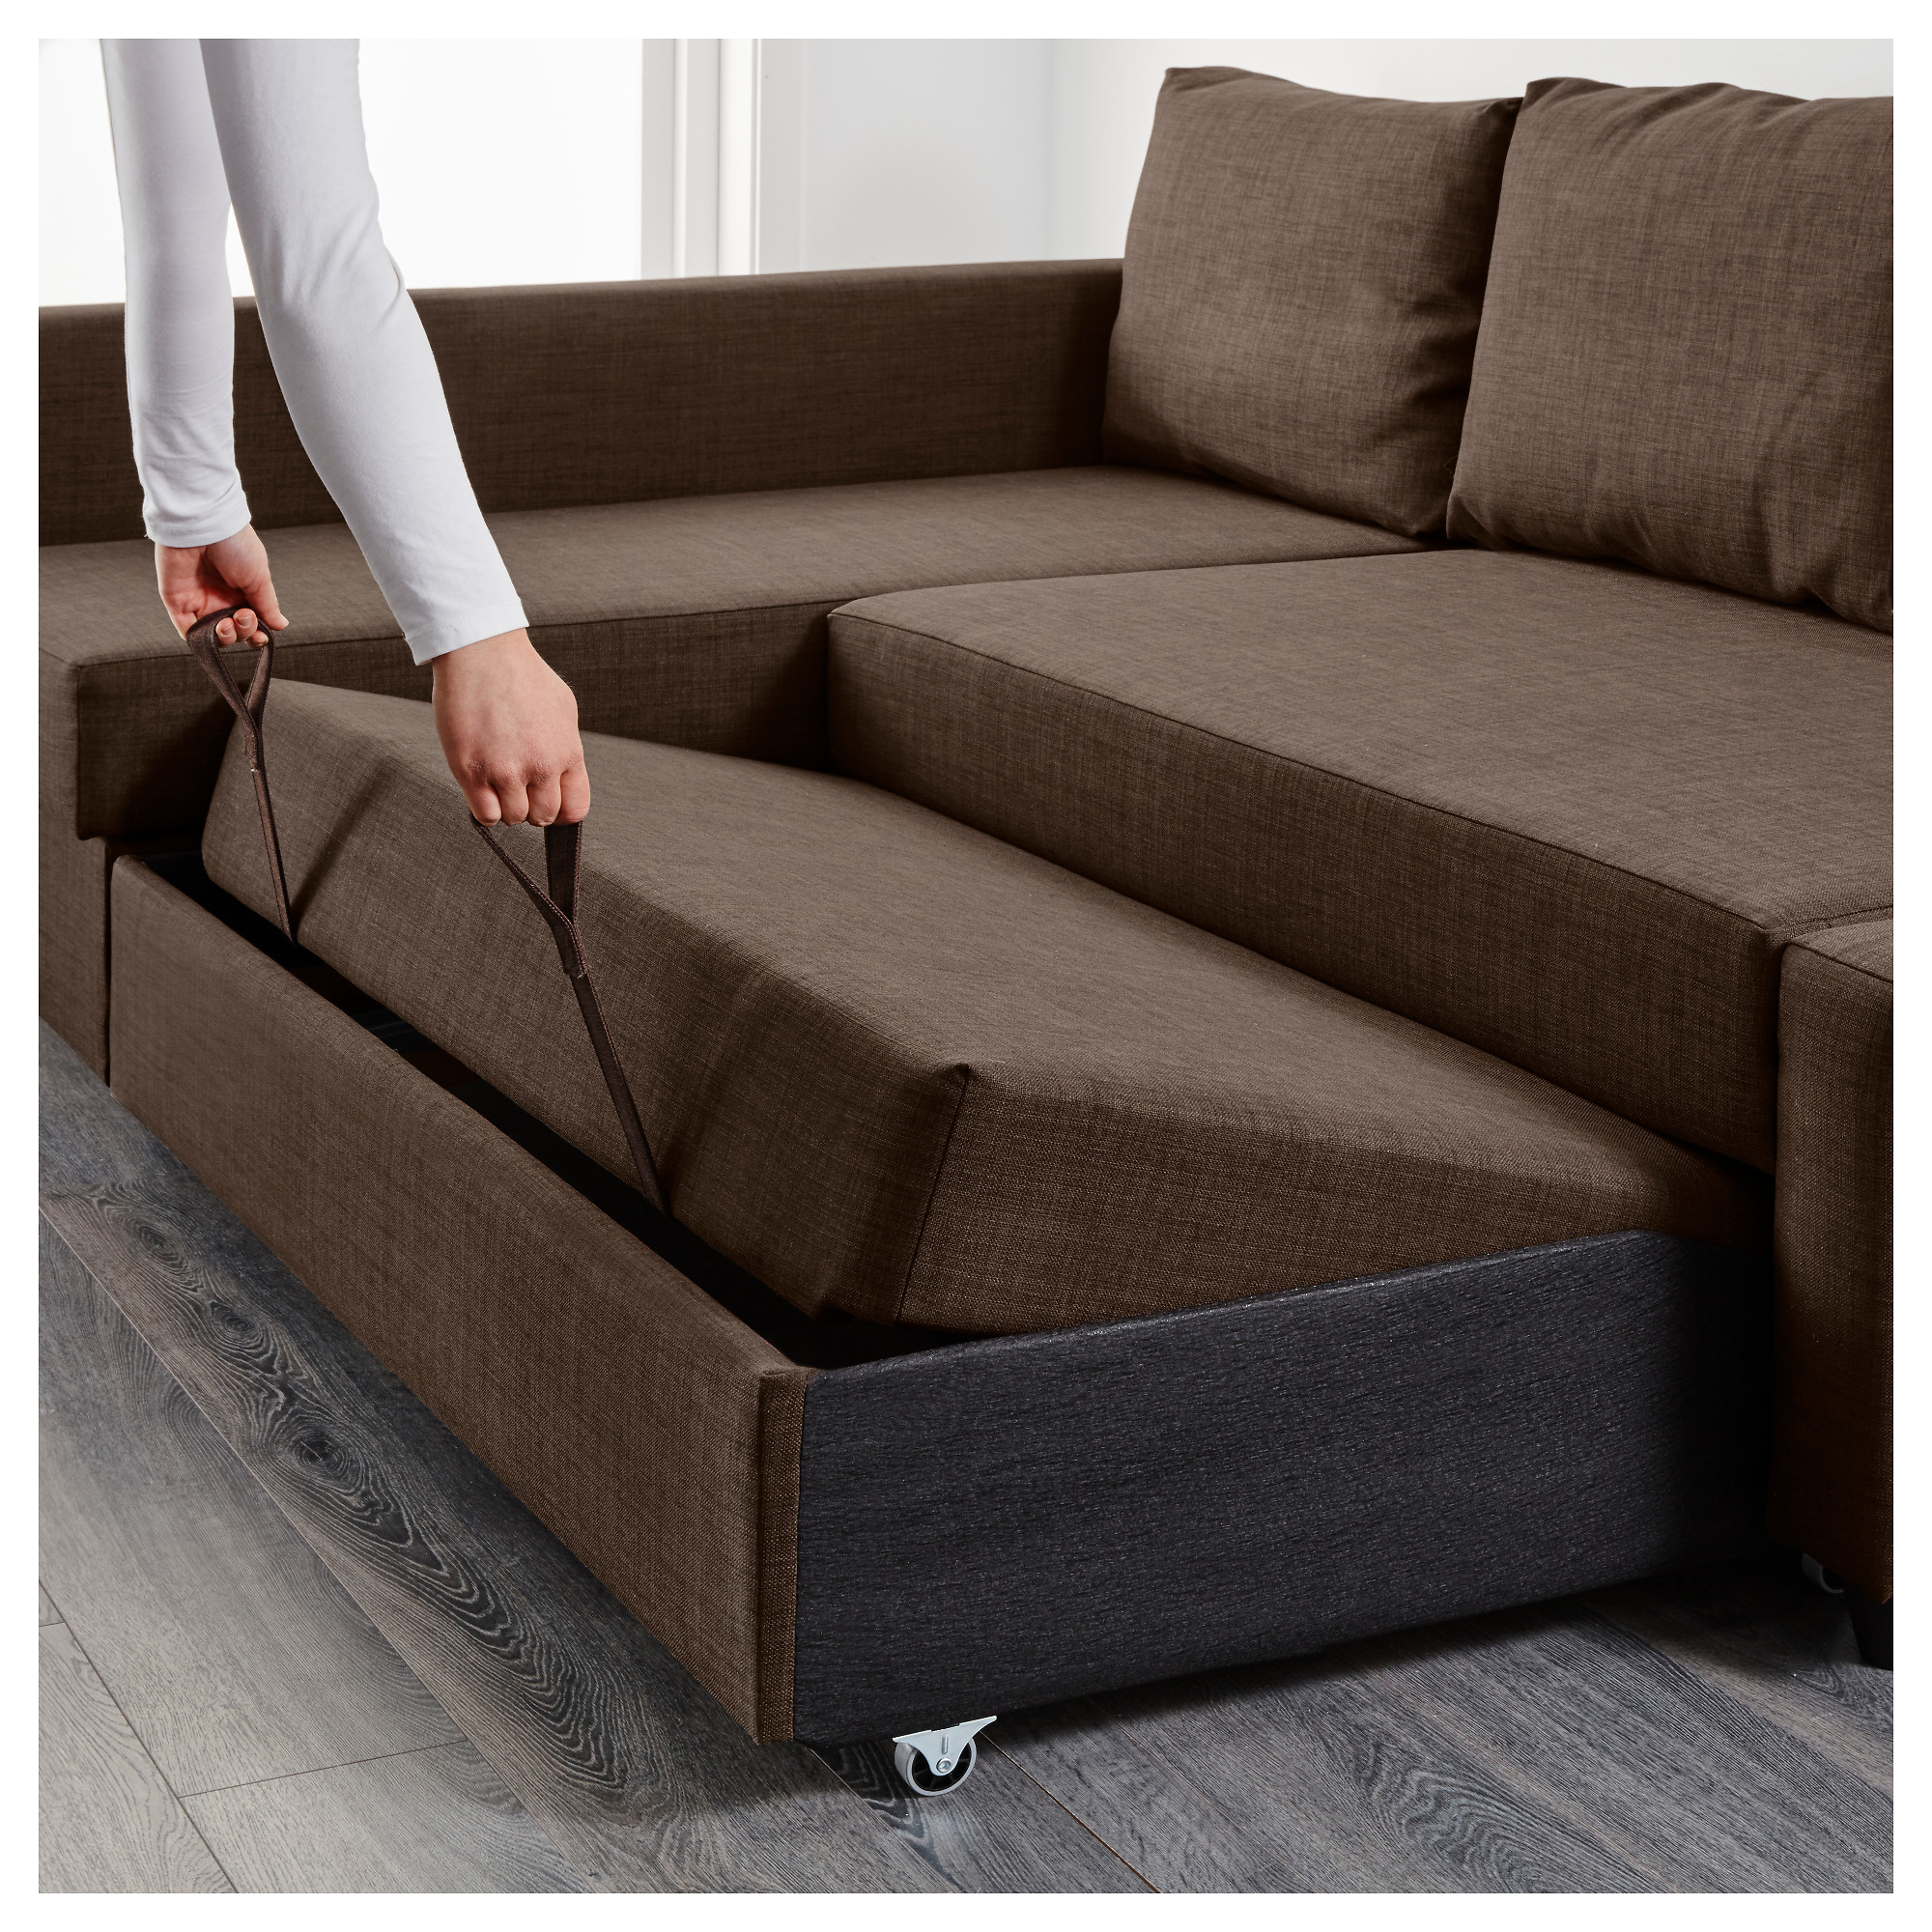 FRIHETEN Sleeper Sectional,3 Seat W/storage   Skiftebo Dark Gray   IKEA